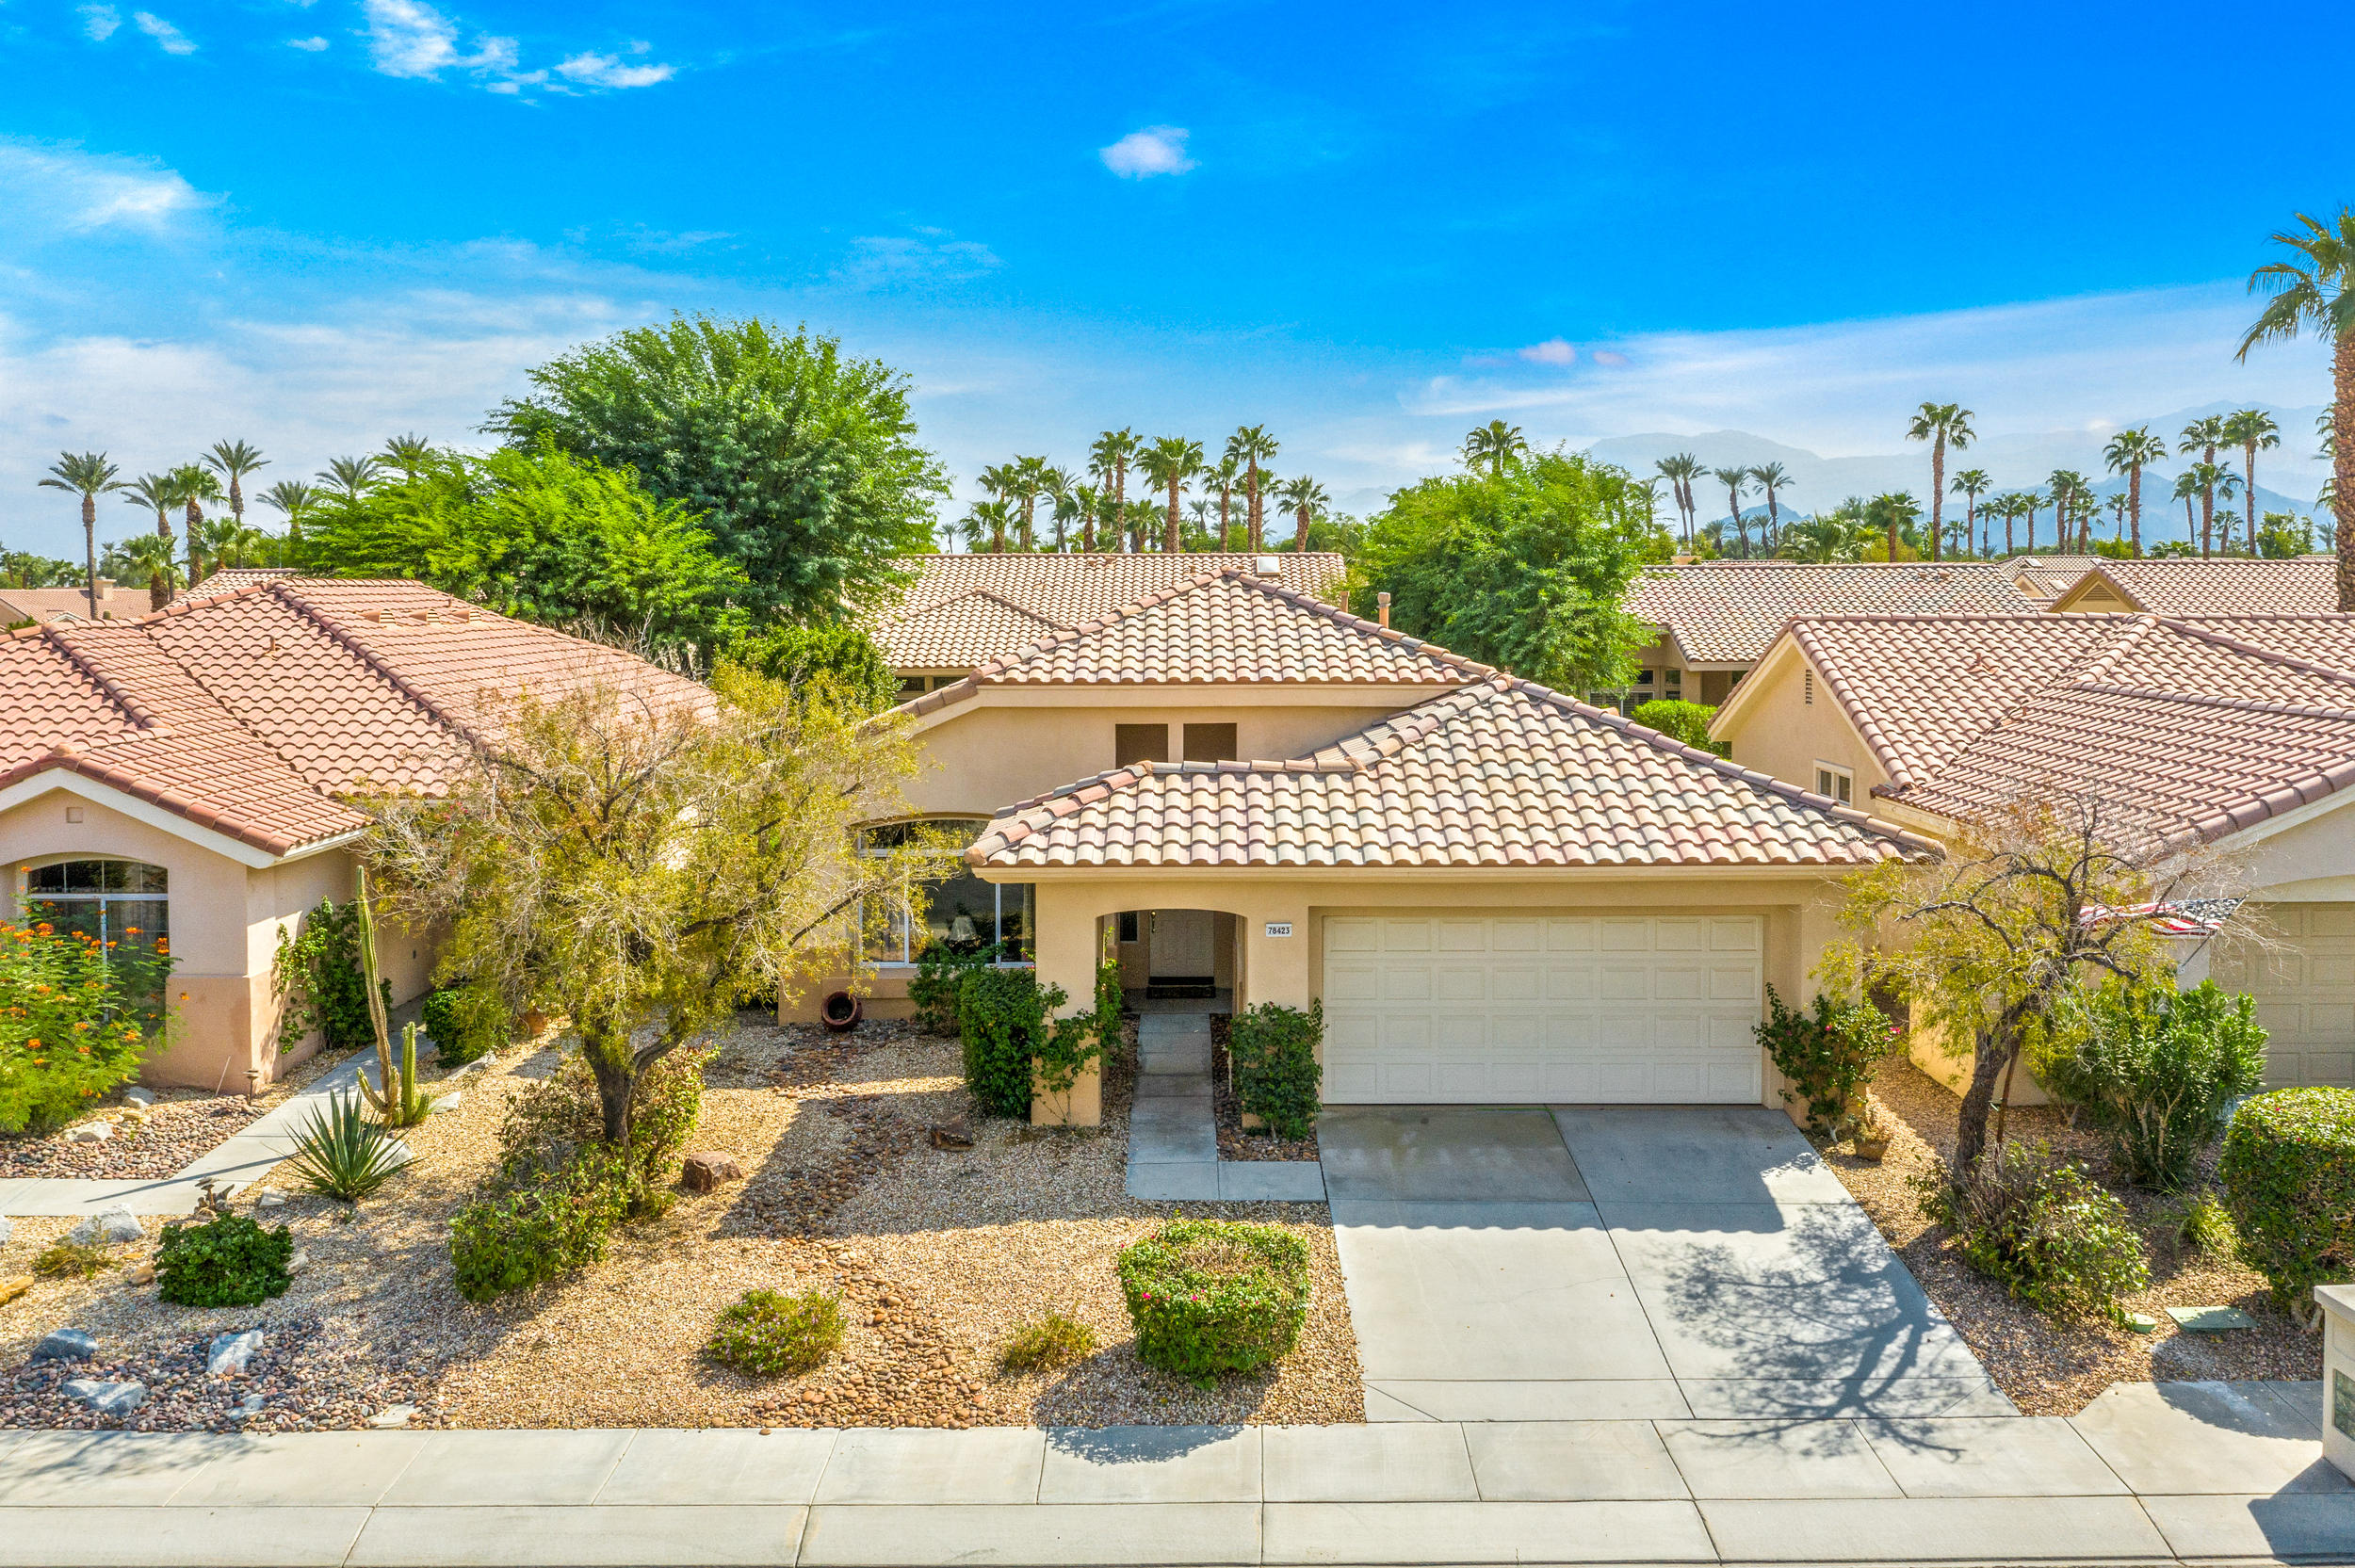 Photo of 78423 Prairie Flower Drive, Palm Desert, CA 92211